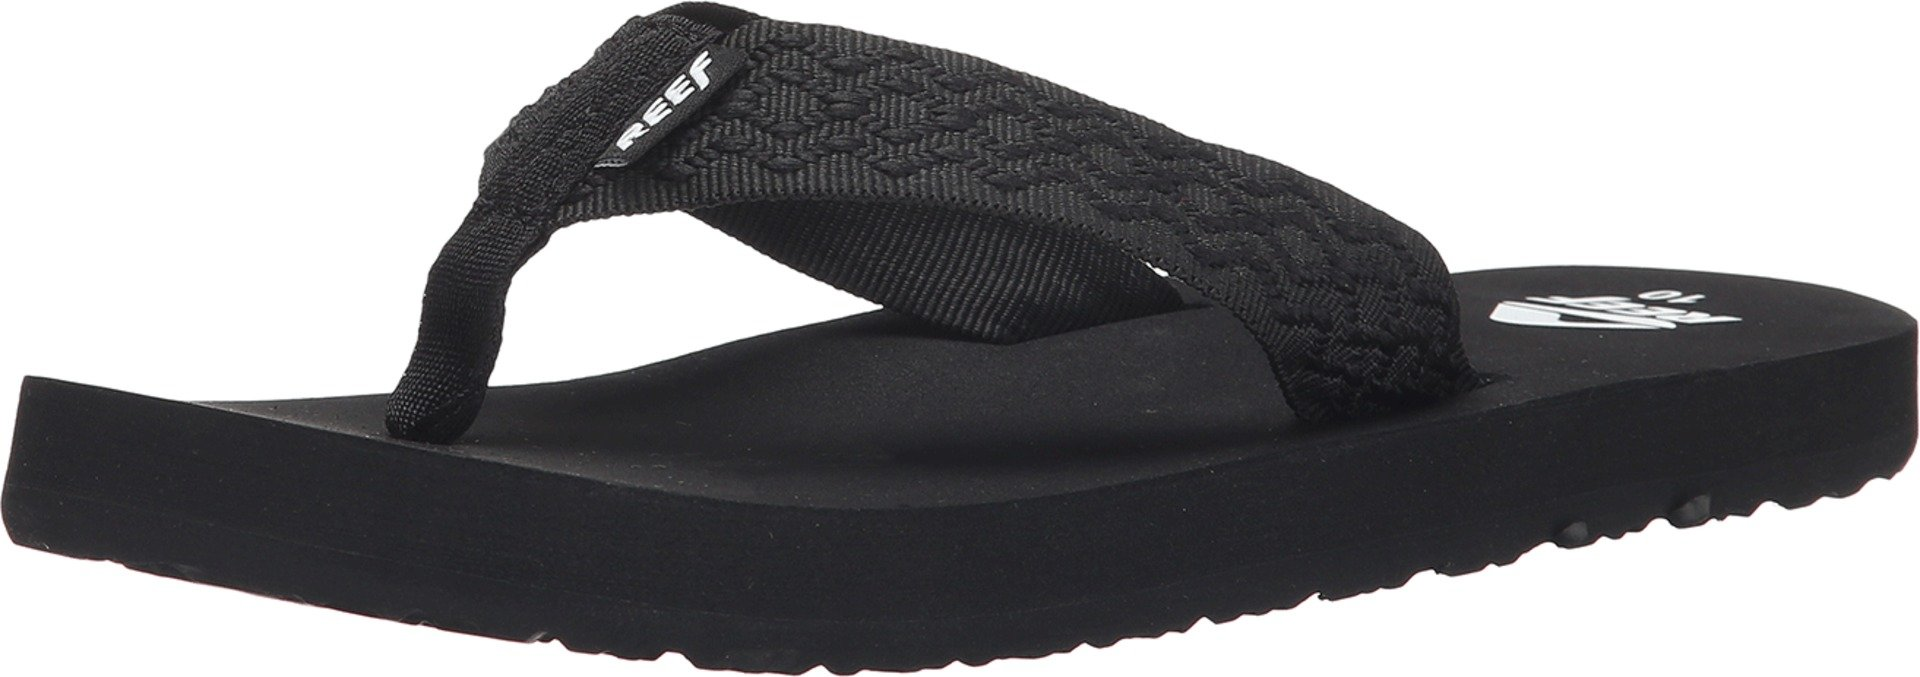 Reef  Men's Smoothy  Sandals , Black/Black-5 D(M) US